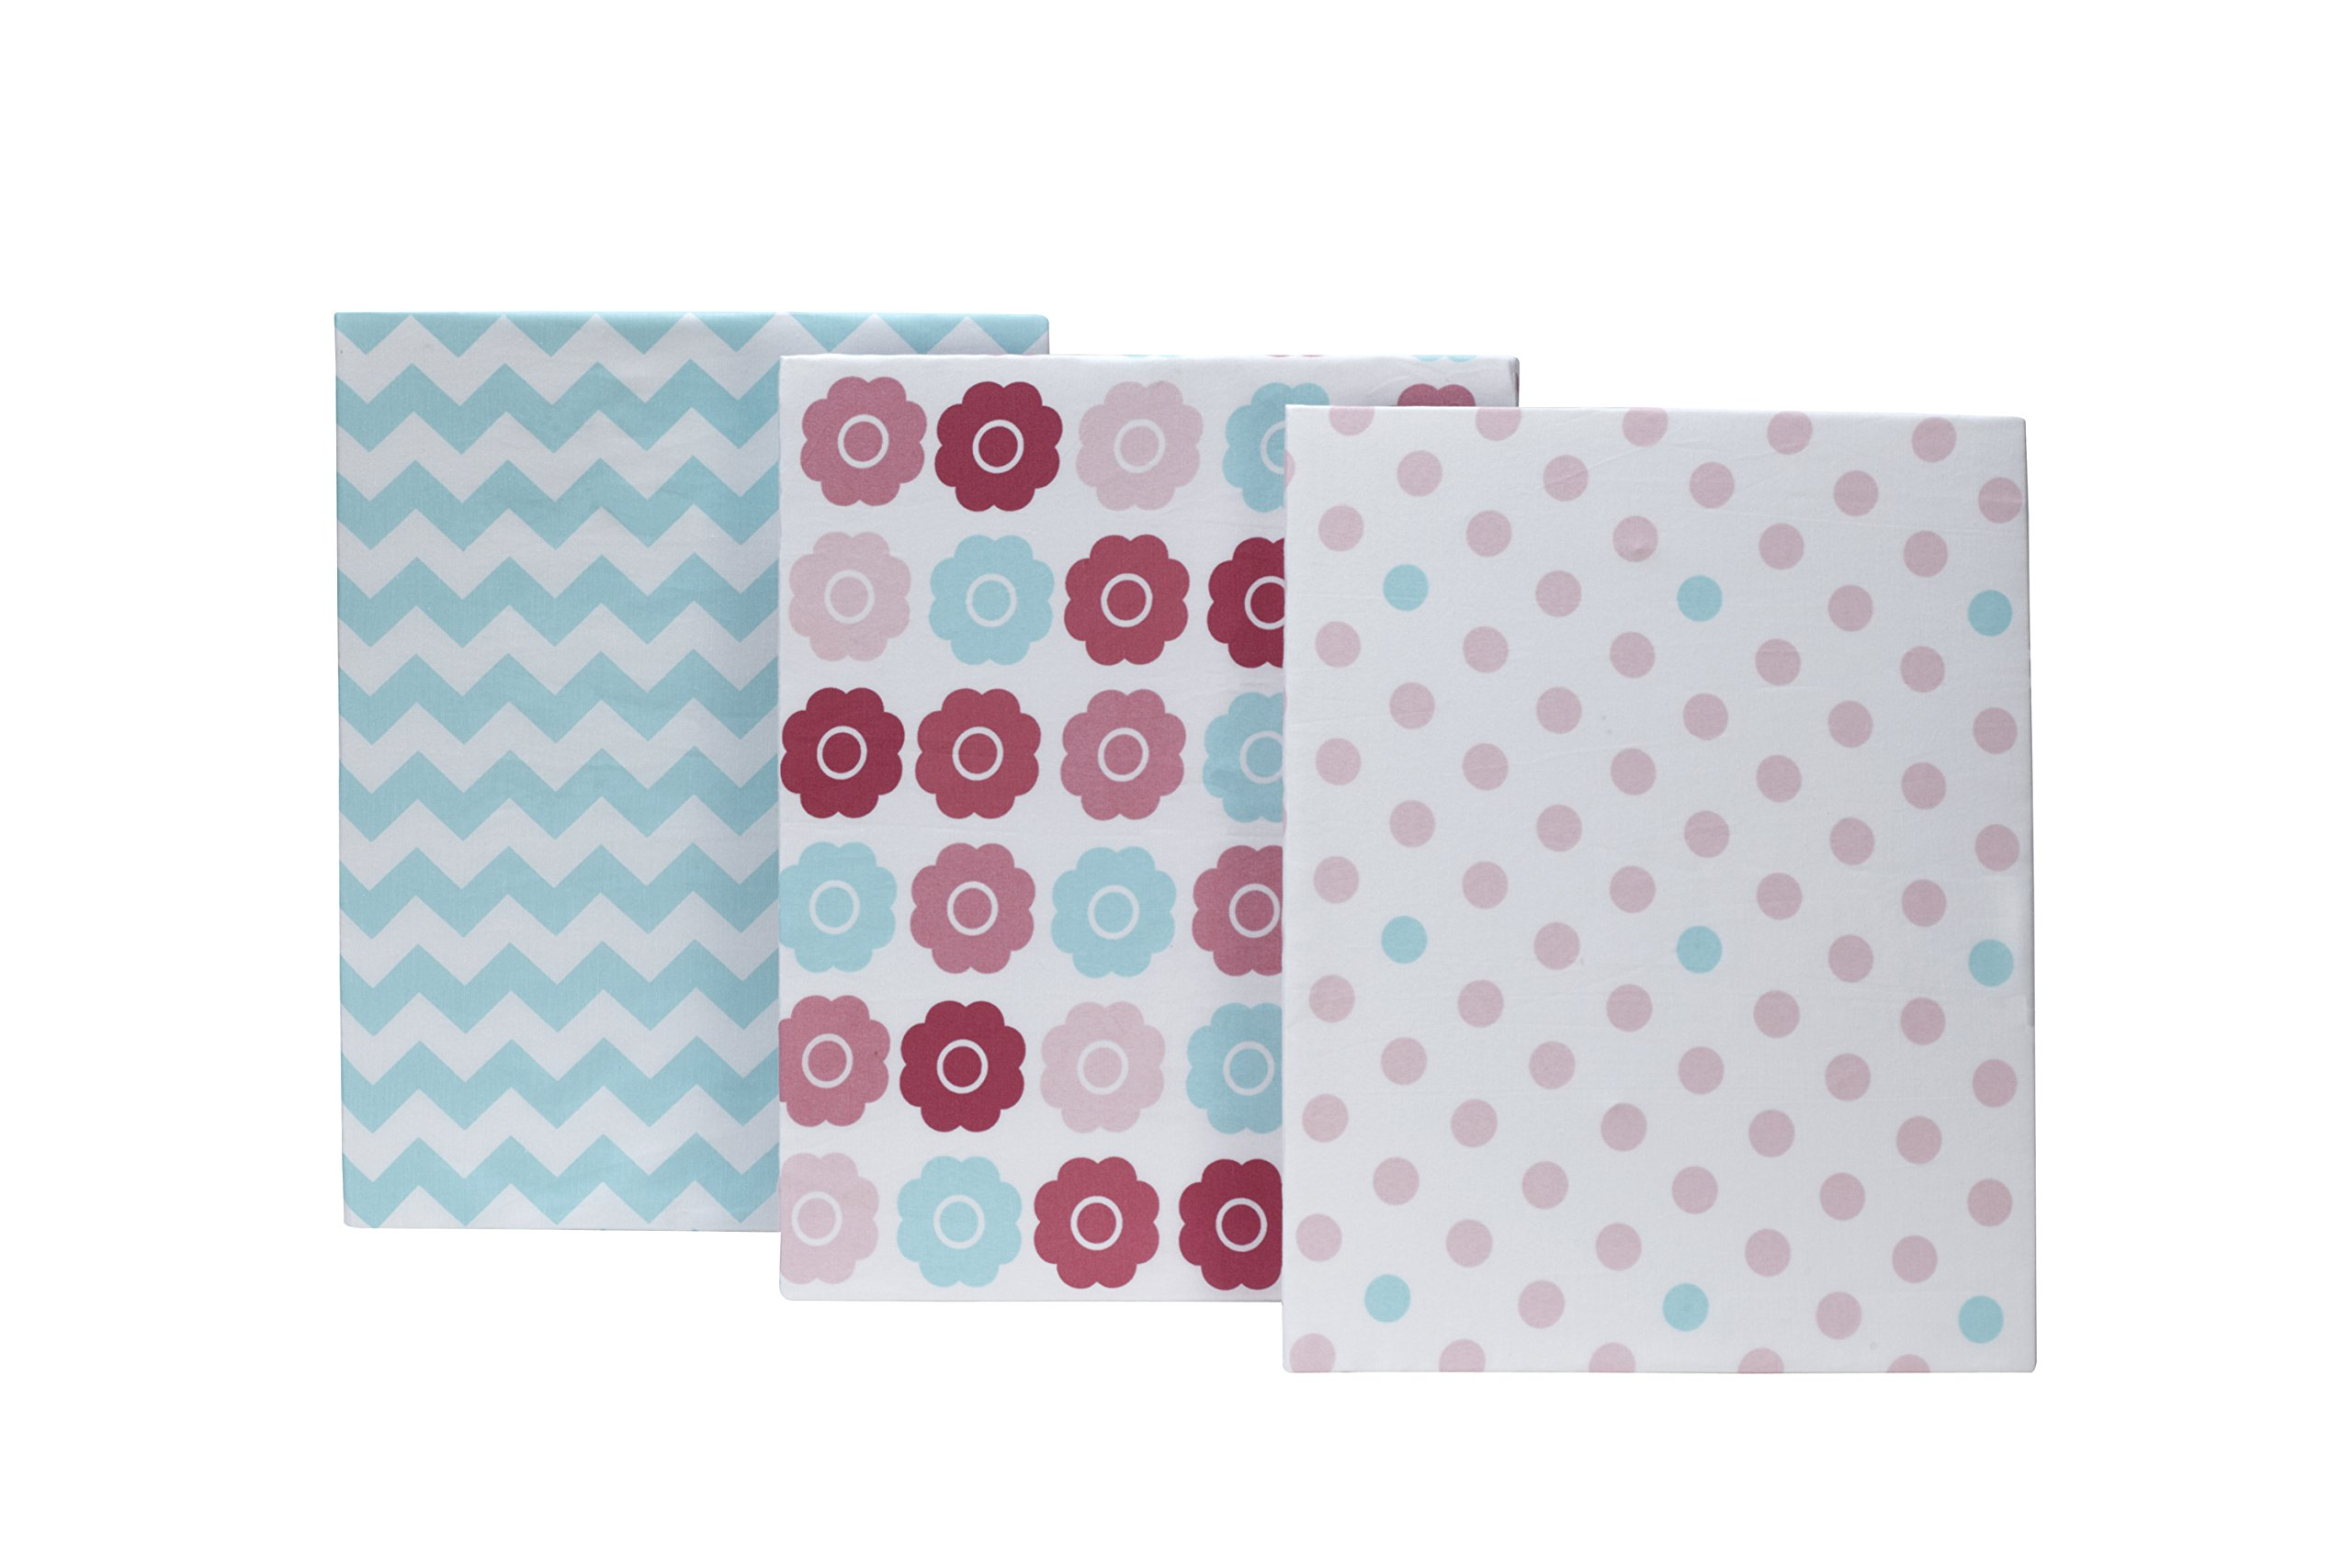 Little Bedding by NoJo 3 Piece Crib Sheet, Tickled Pink